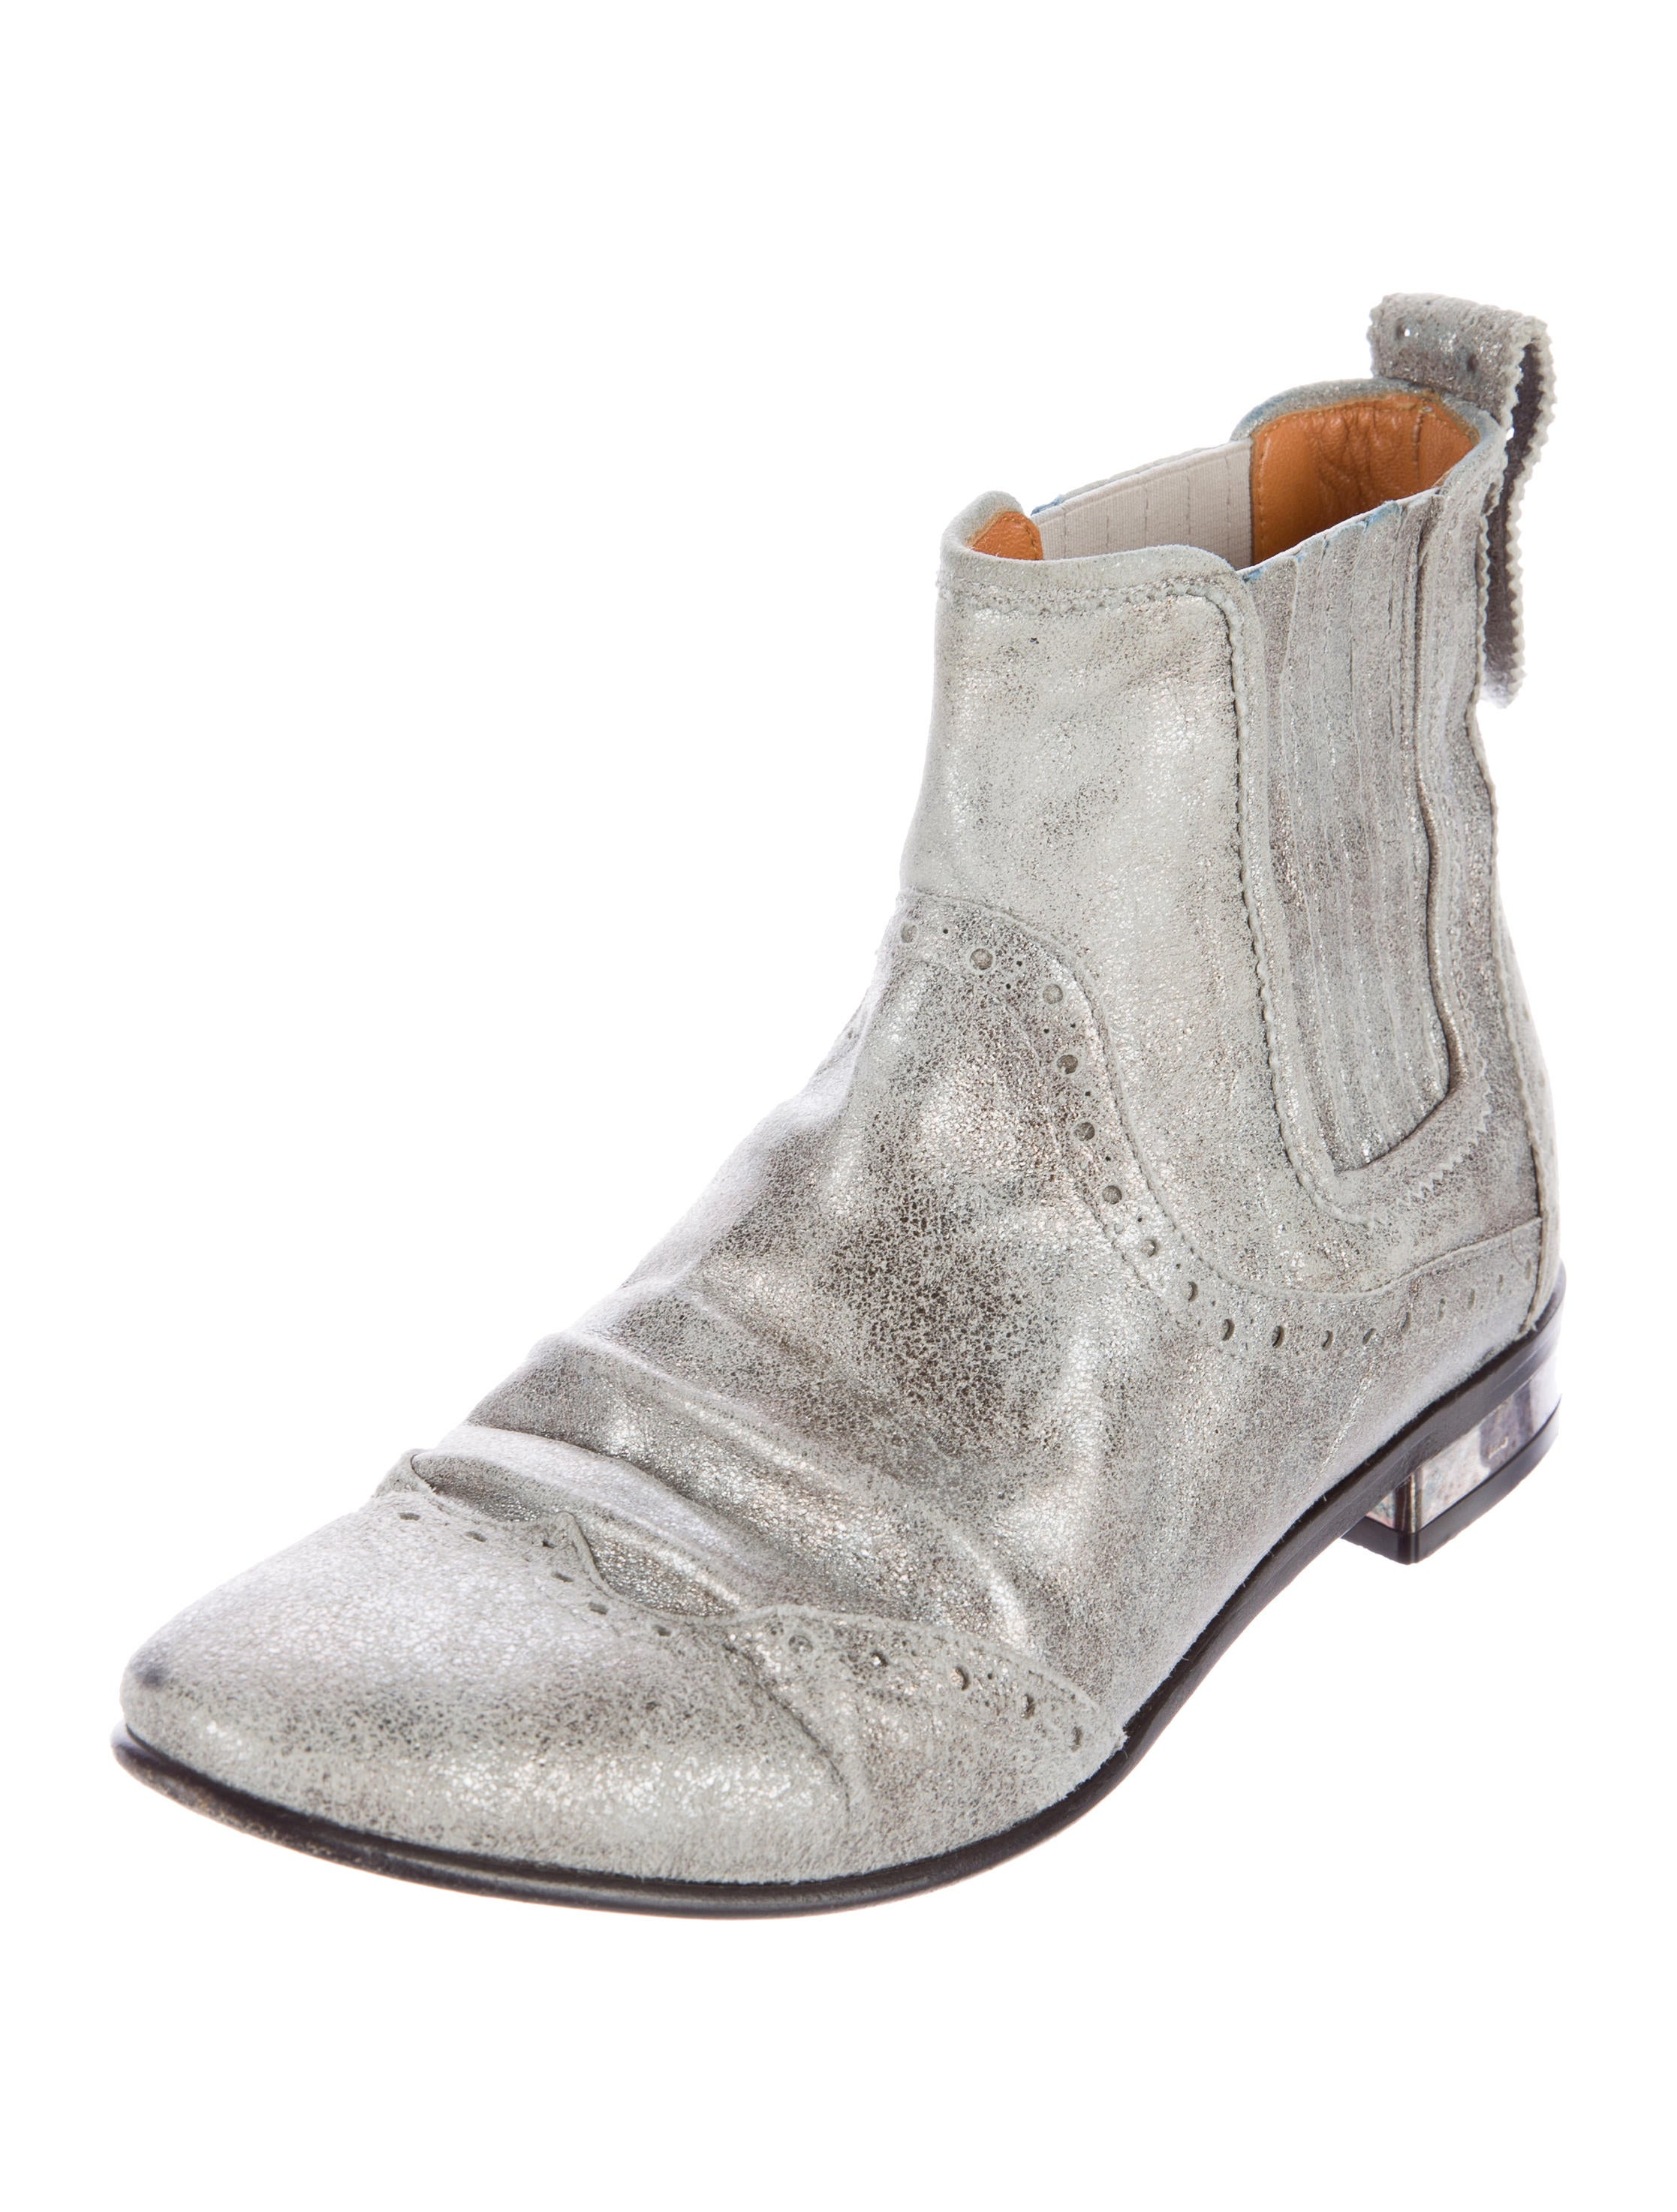 golden goose perforated ankle boots shoes wg522279